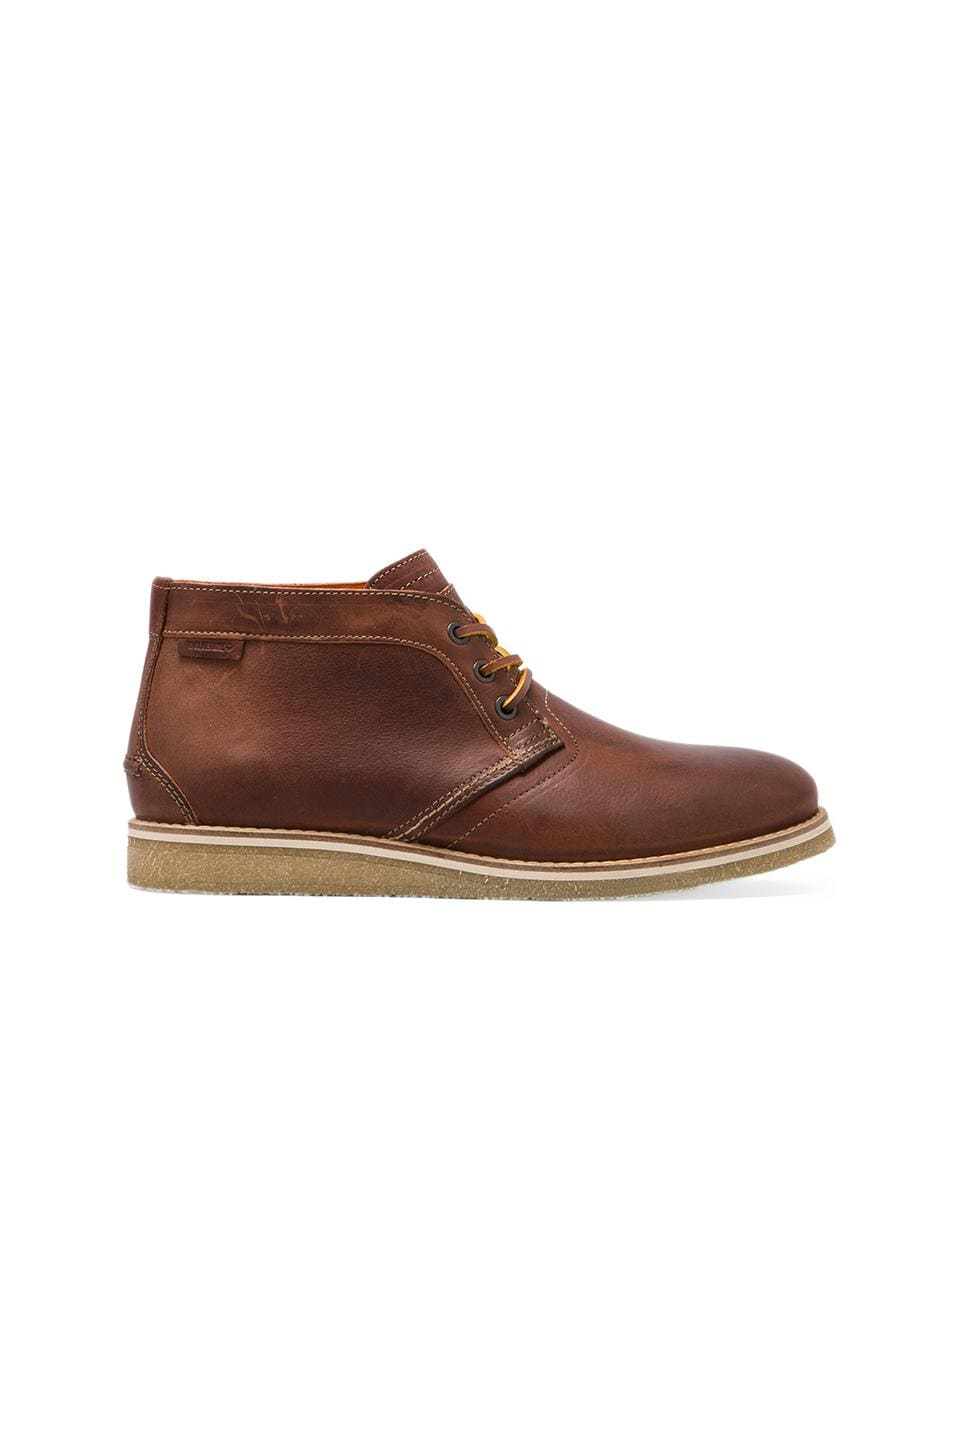 Wolverine 1883 Julian Crepe Chukka Leather in Cognac